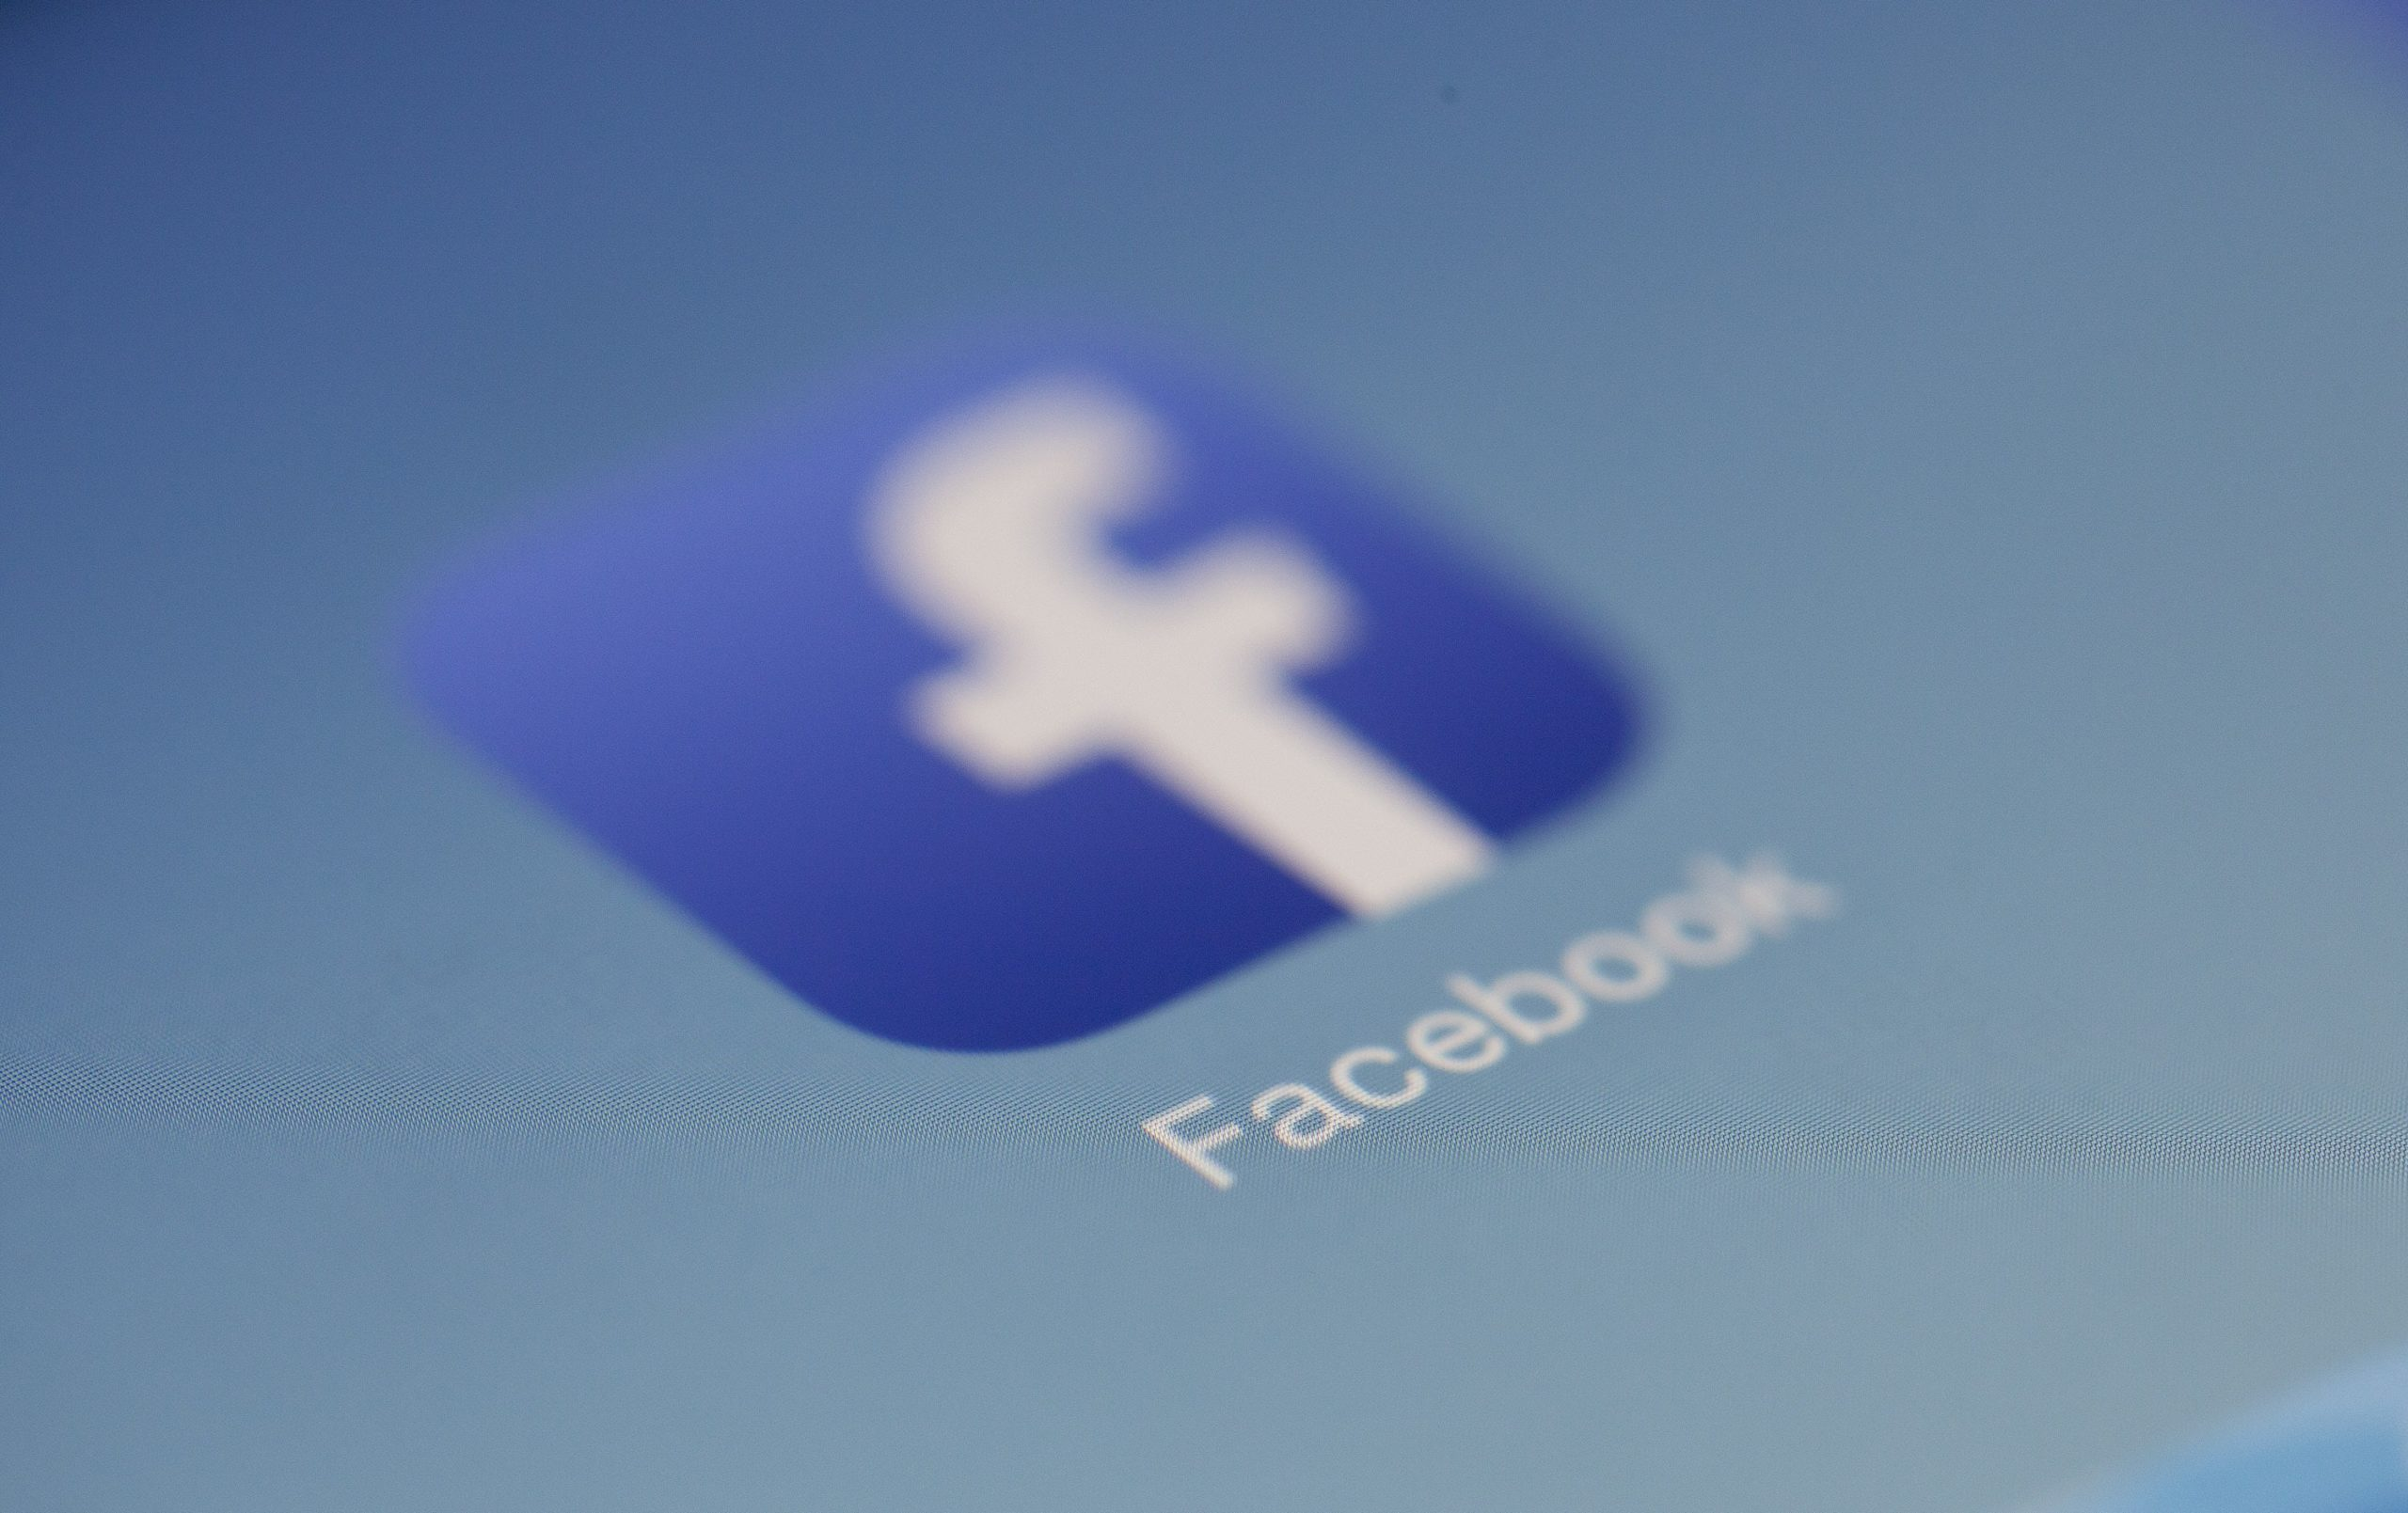 Blurred Photo Of Facebook Icon